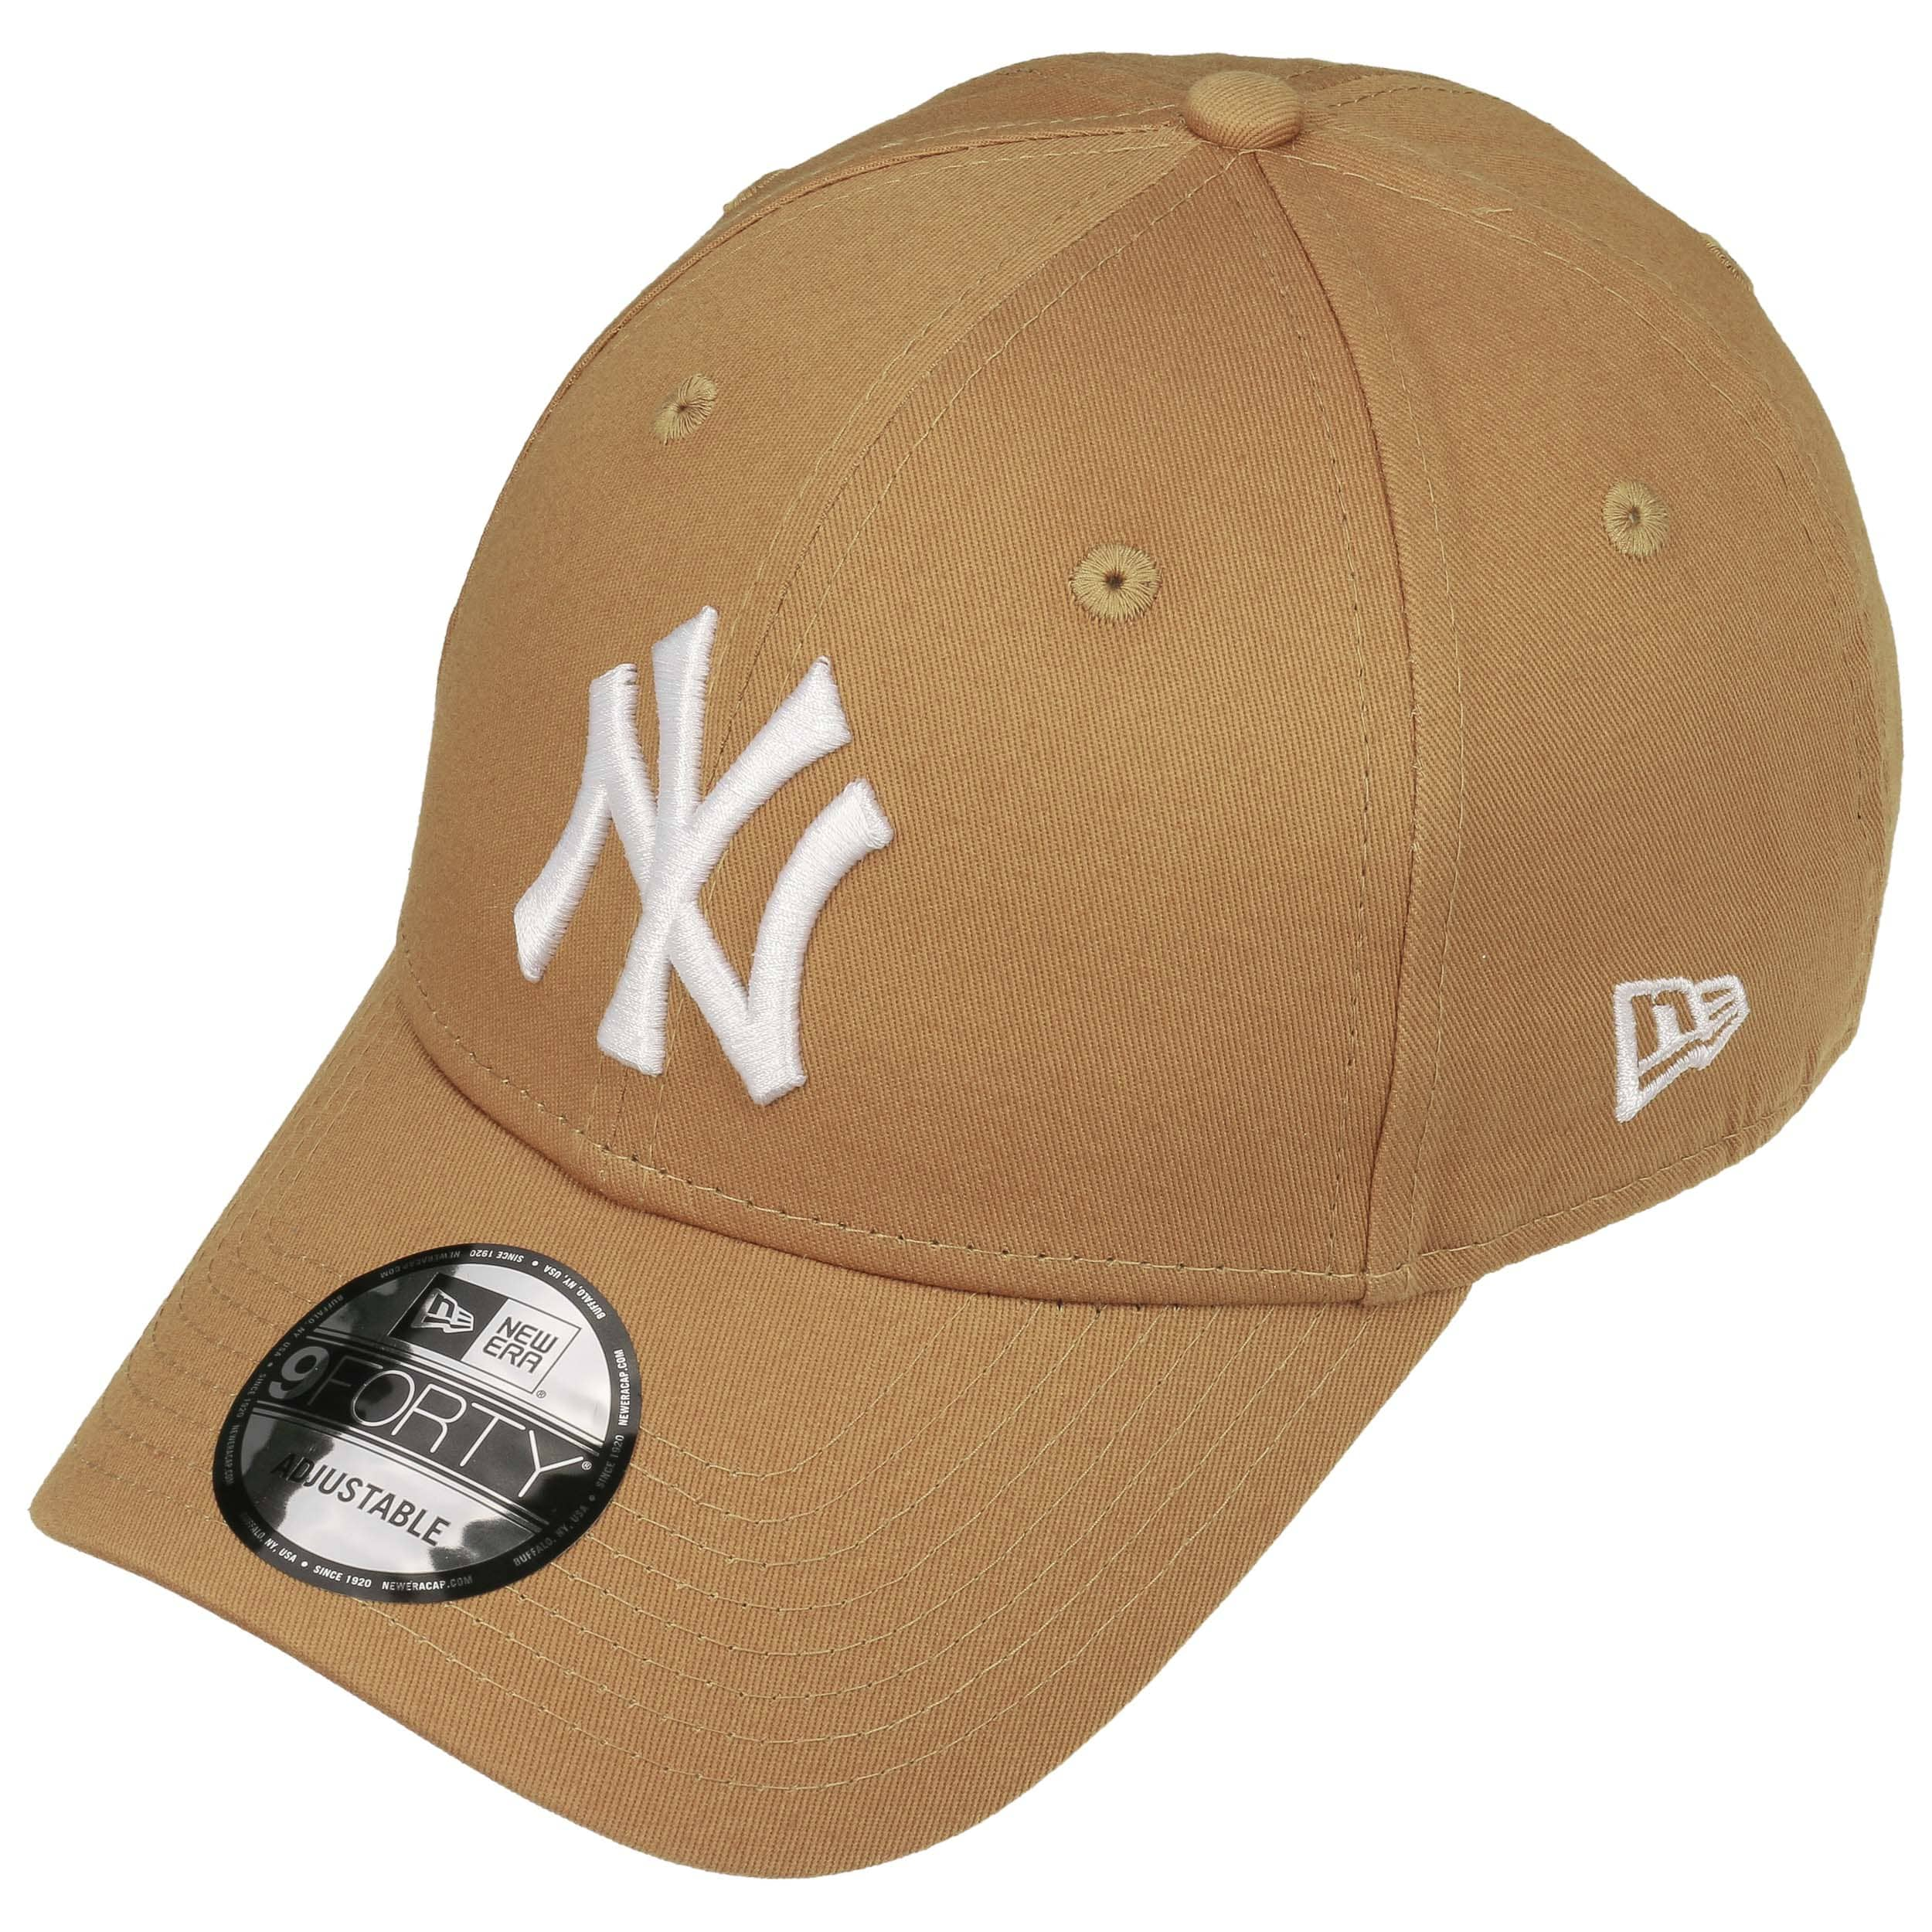 ... 9Forty League Essential NY Cap by New Era - light brown 1 ... 2c4a5faef0c